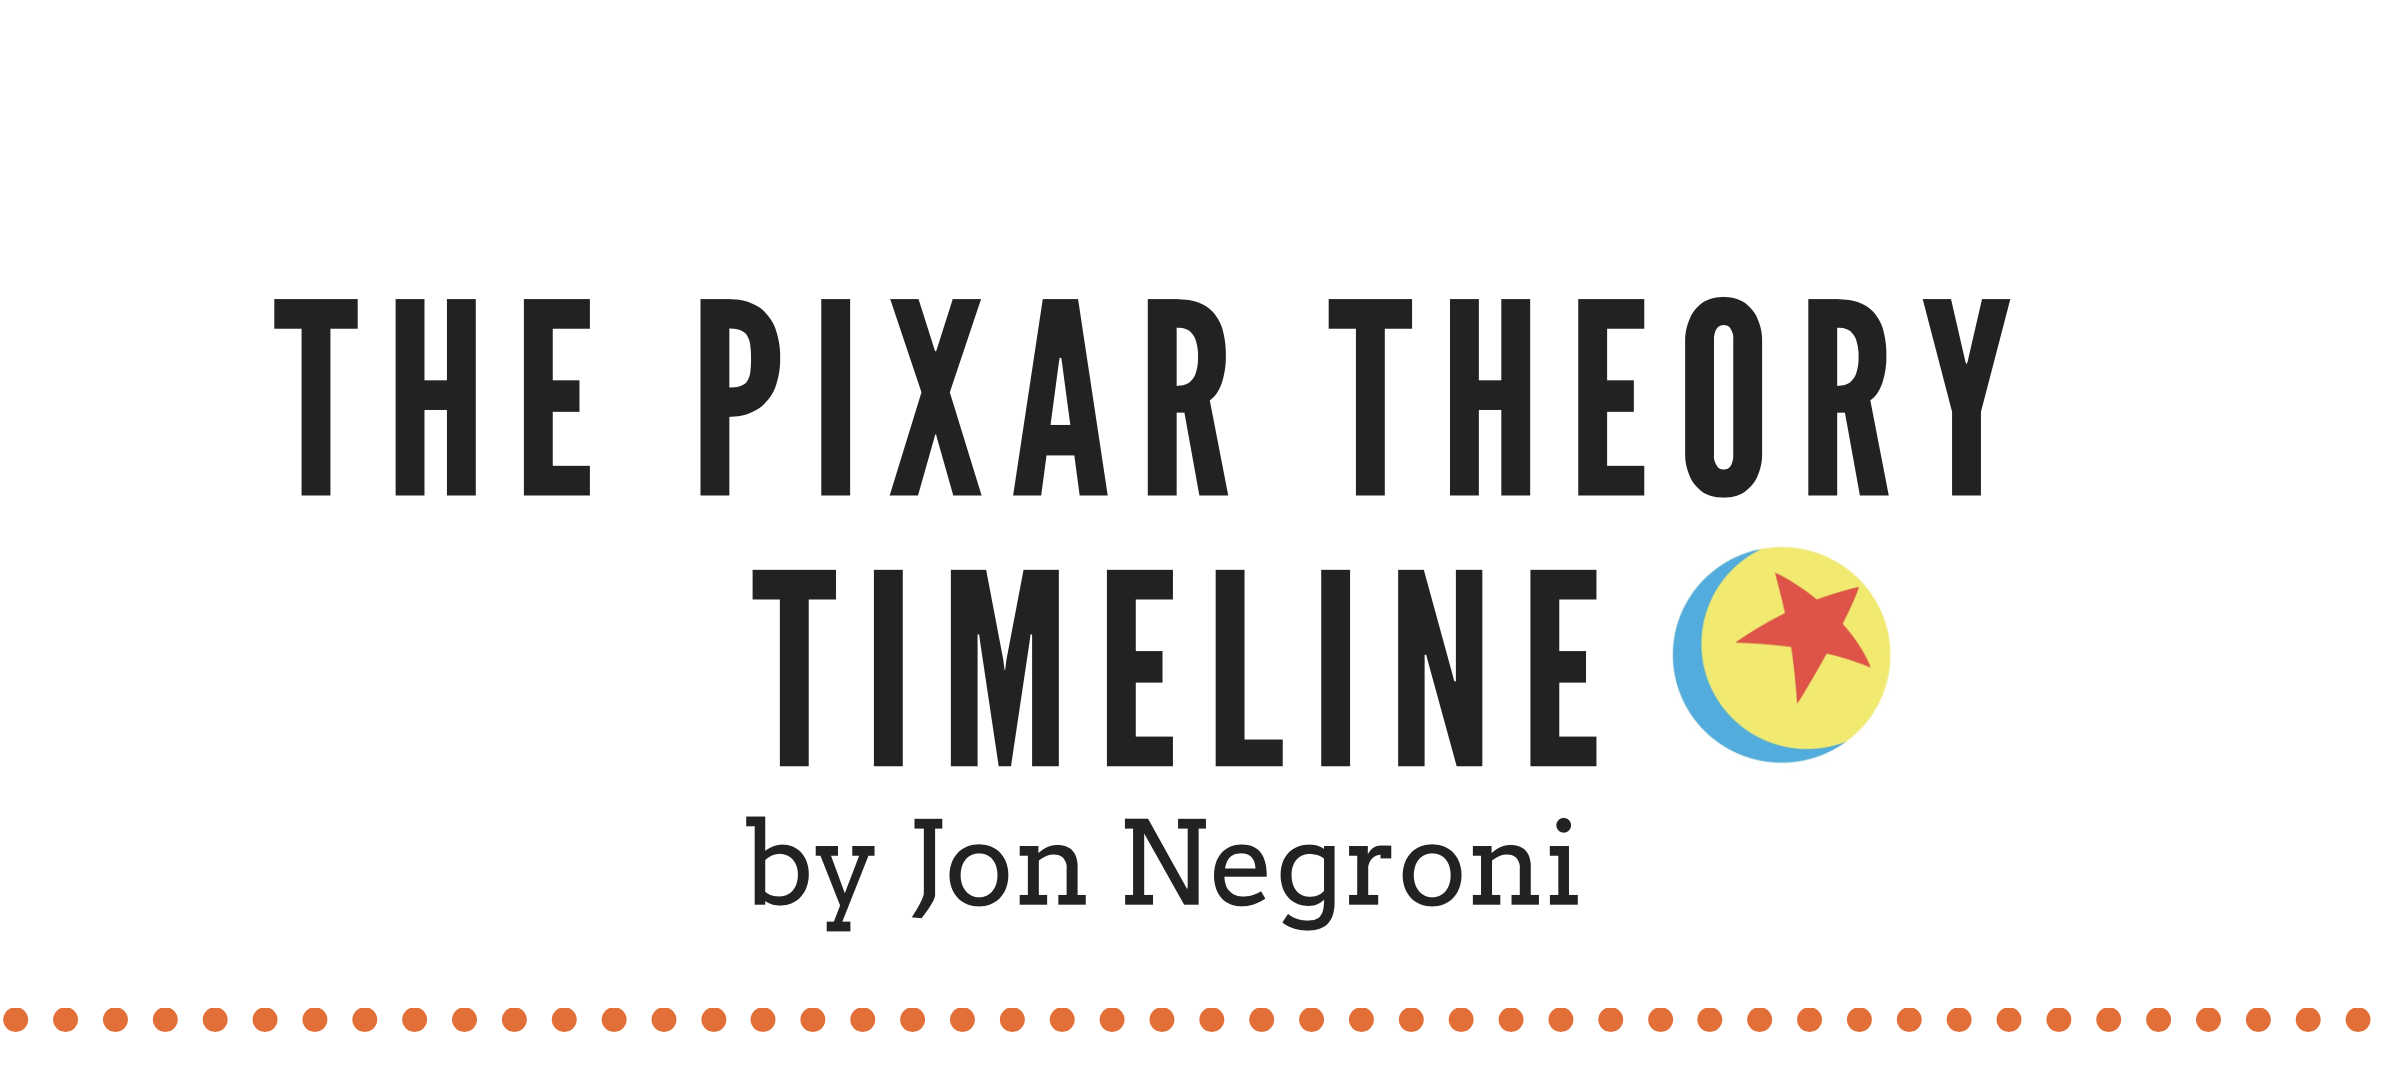 The Pixar Theory Timeline